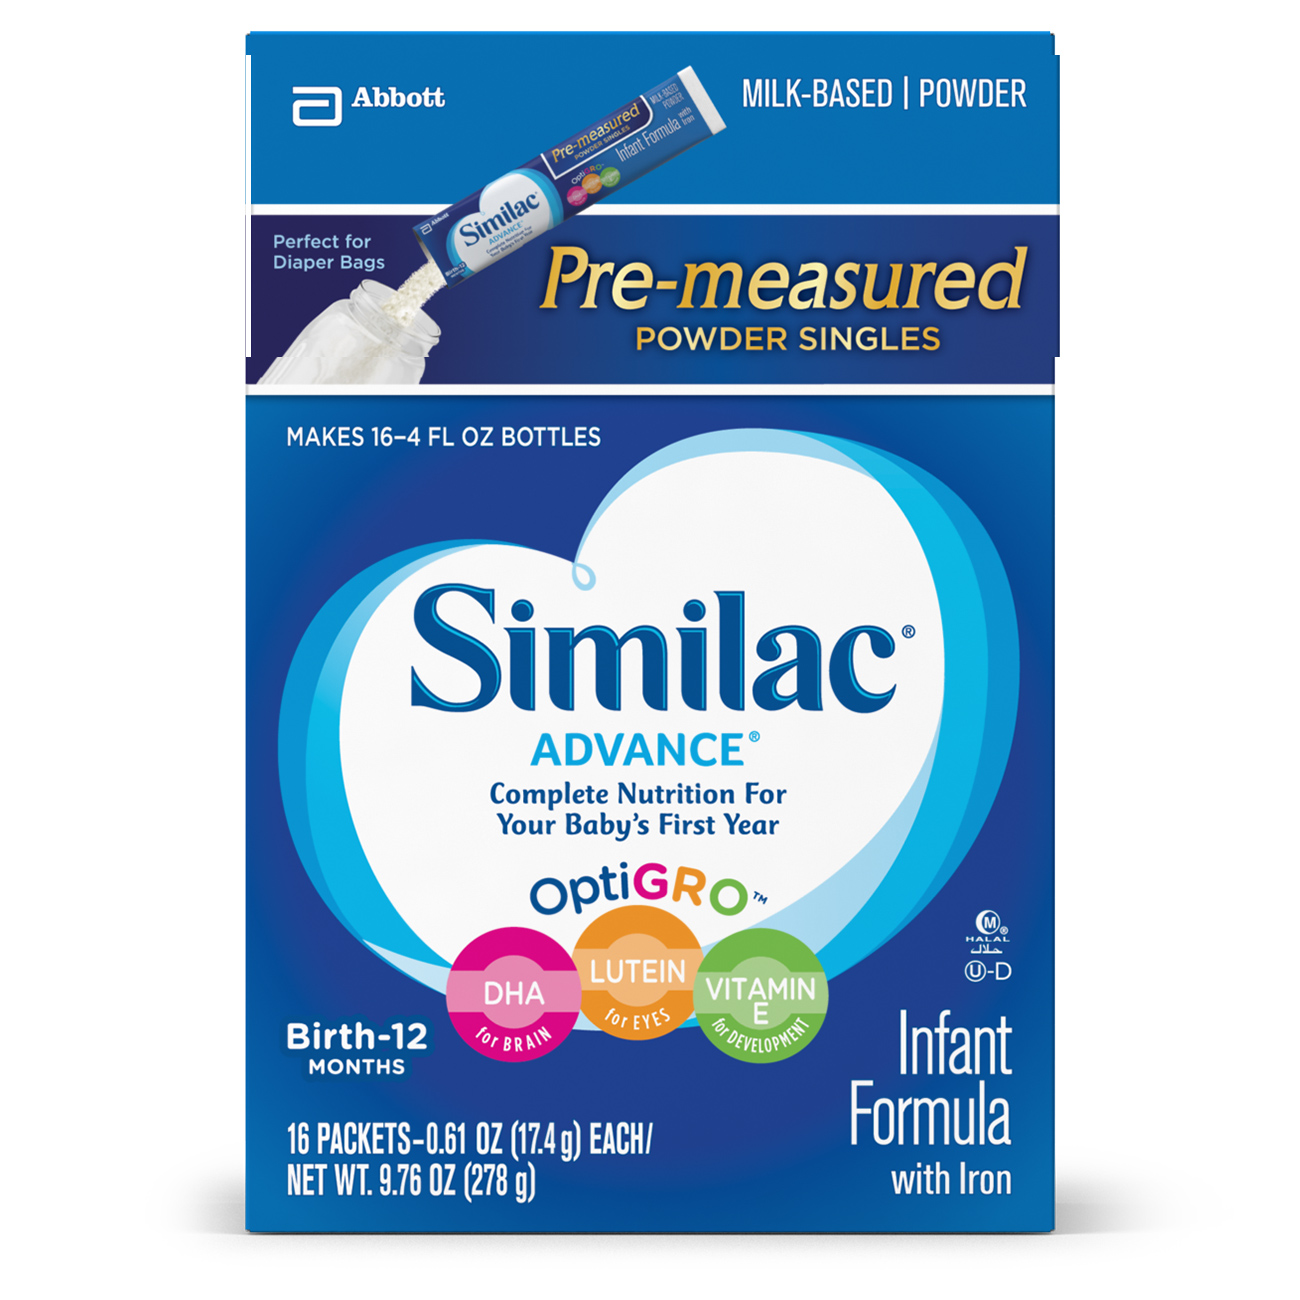 Similac Advance Infant Formula with Iron, On-the-Go Powder Sticks, 9.76 oz  (Pack of 4)